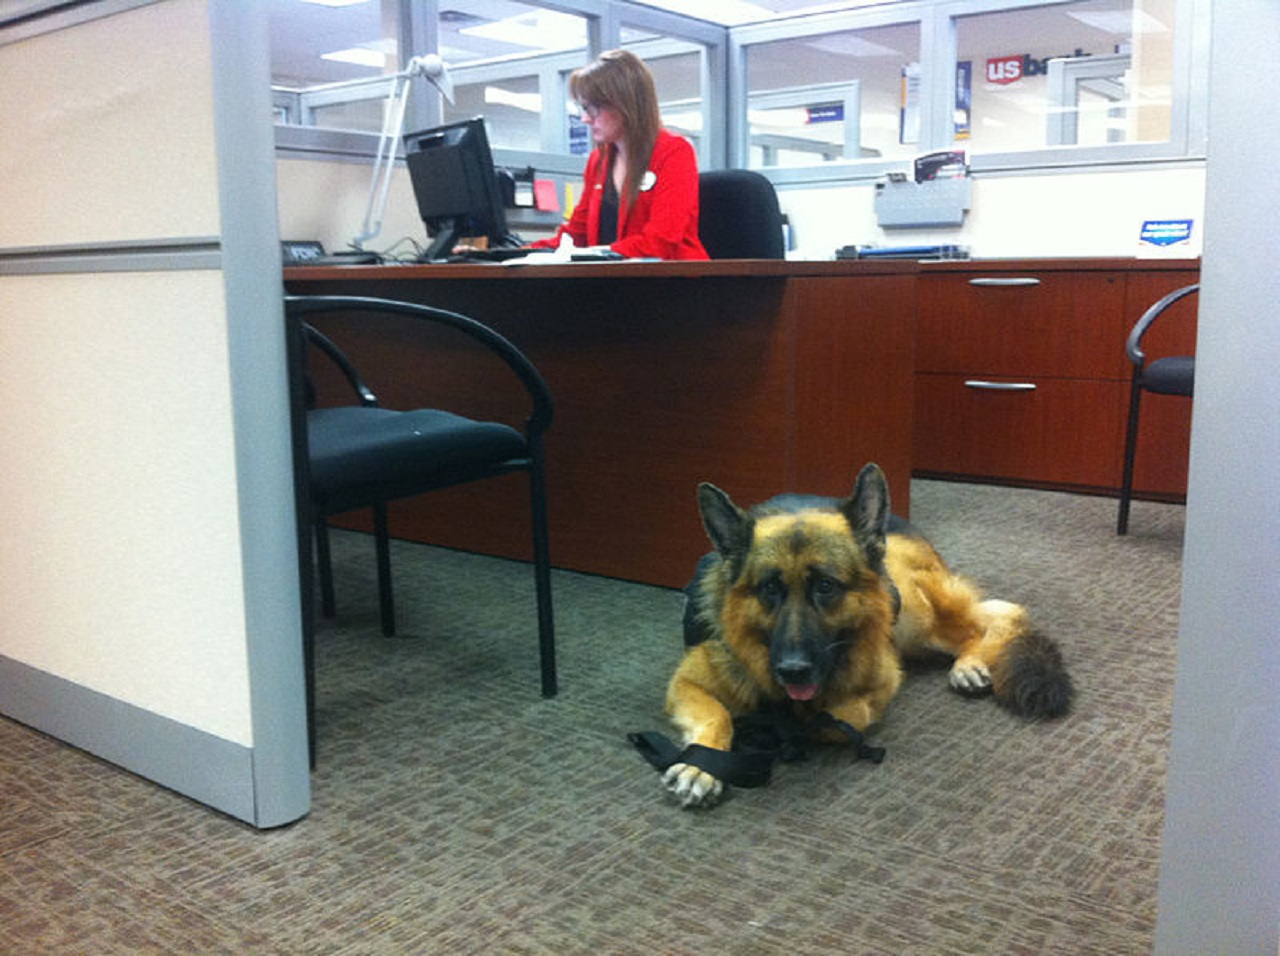 Why Bringing Your Dog to Work Is Good for Your Health